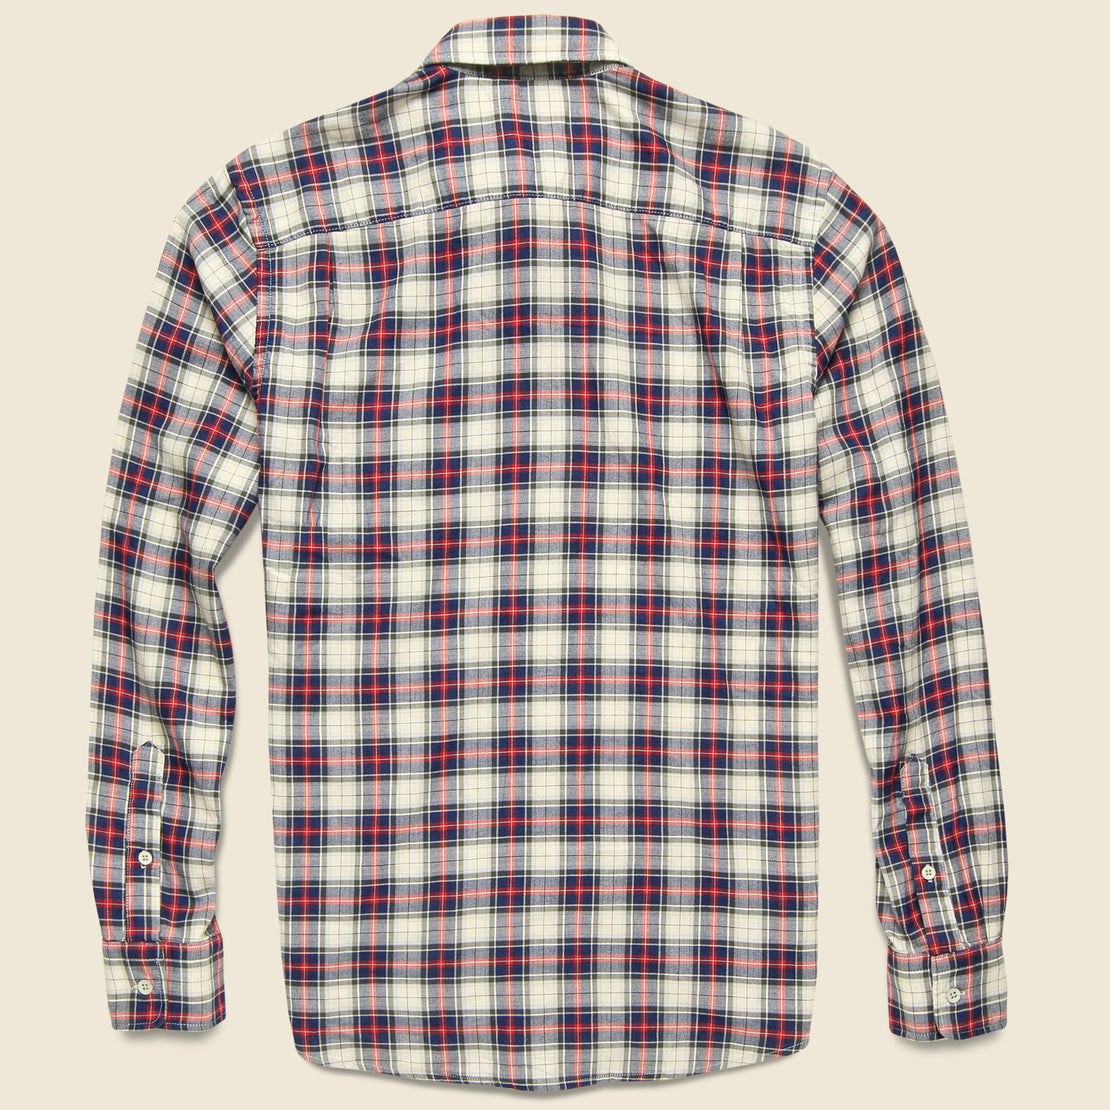 Brushed Everyday Shirt - Indigo Heritage Tartan